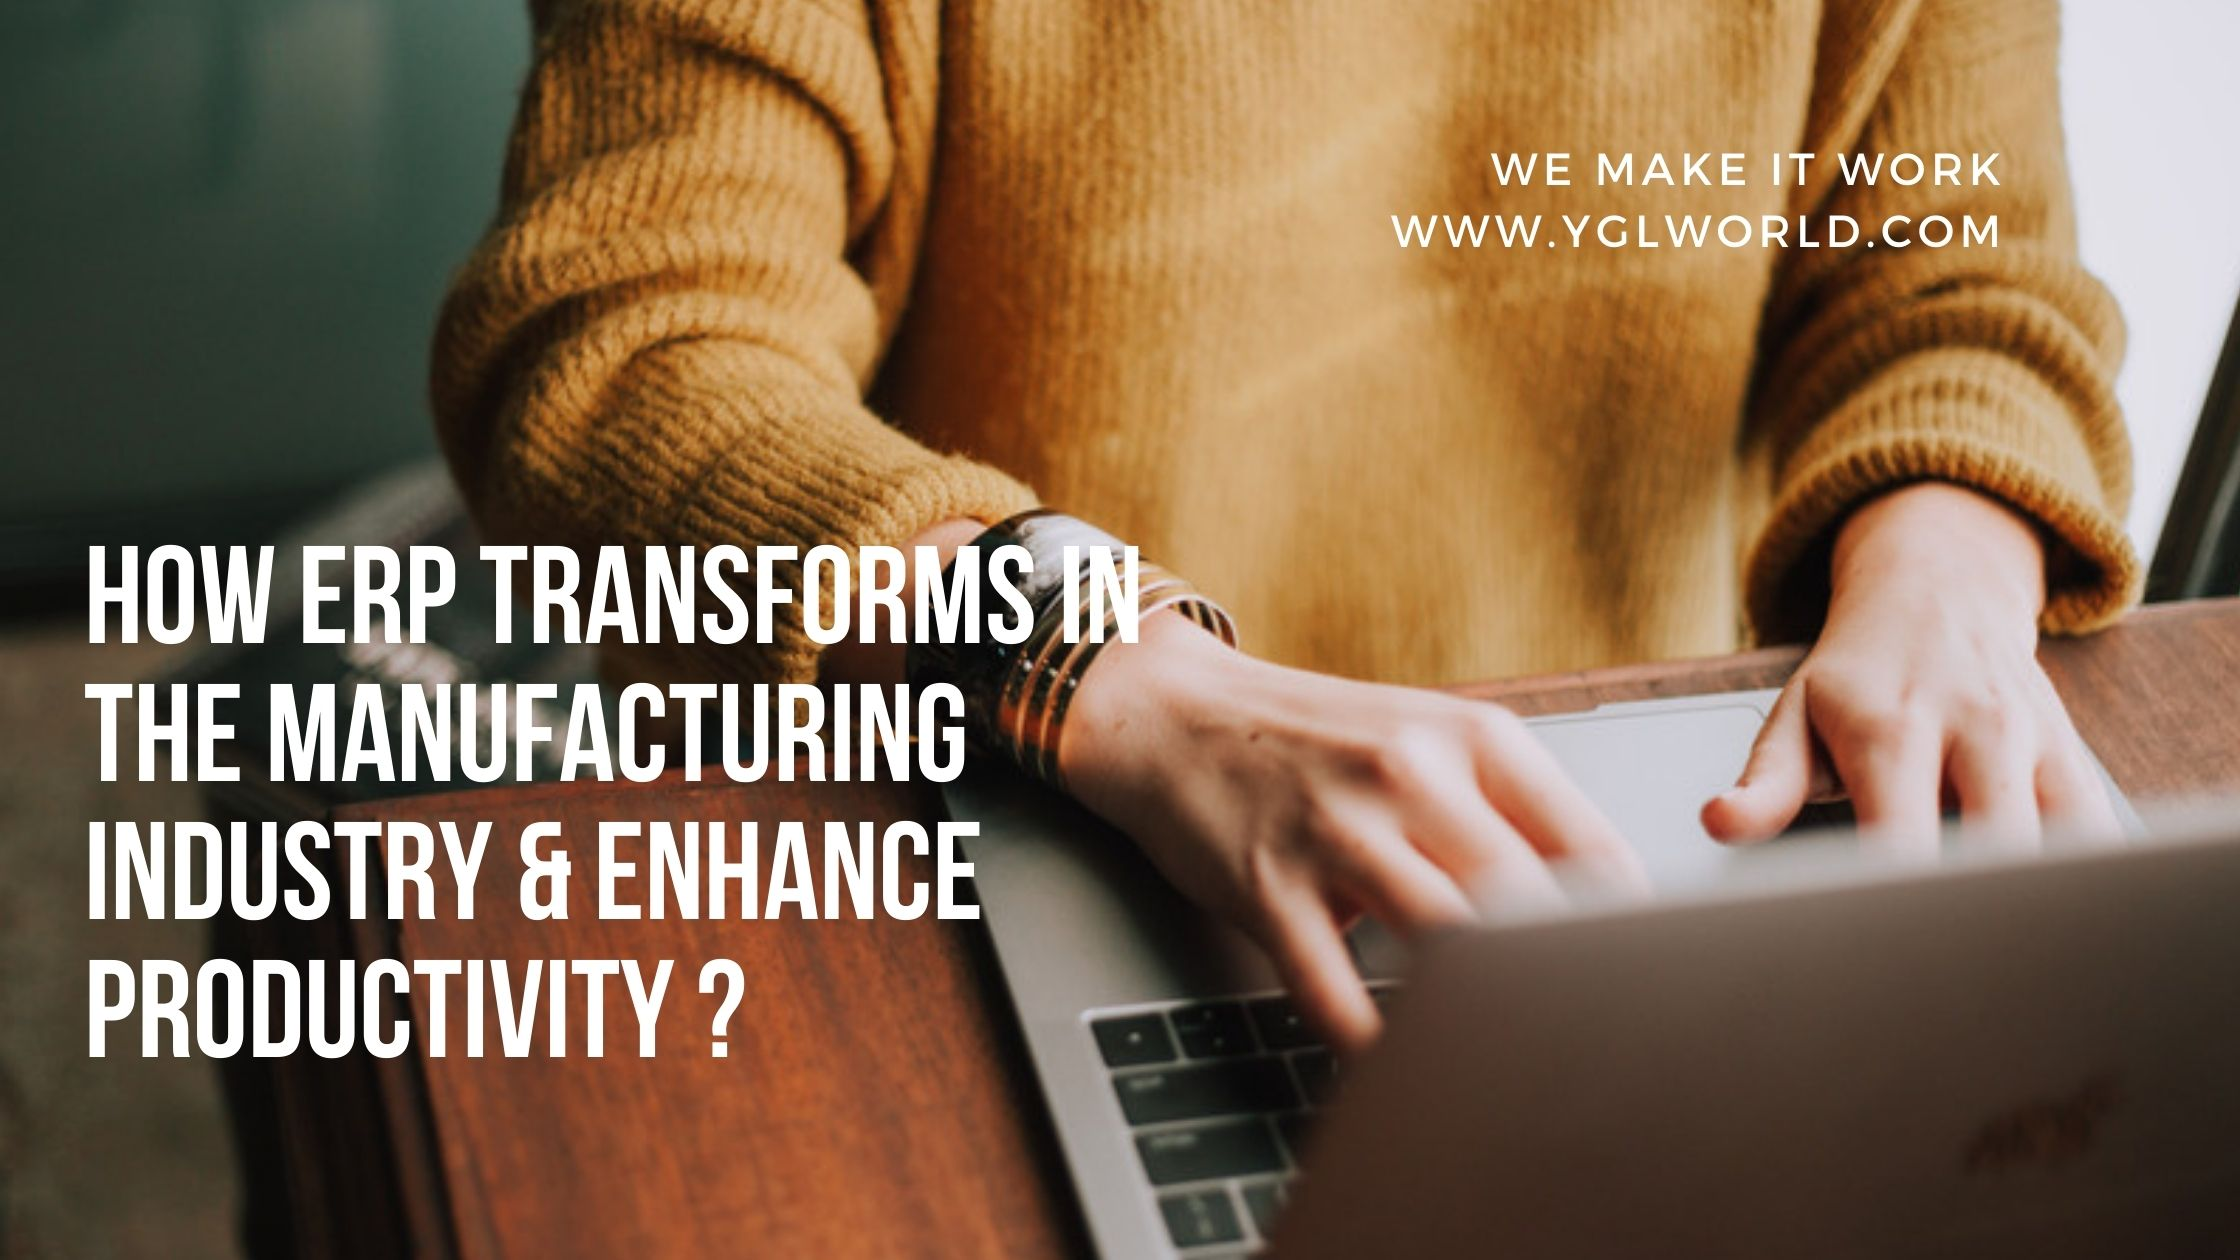 How ERP Transforms in the Manufacturing Industry & Enhance Productivity?